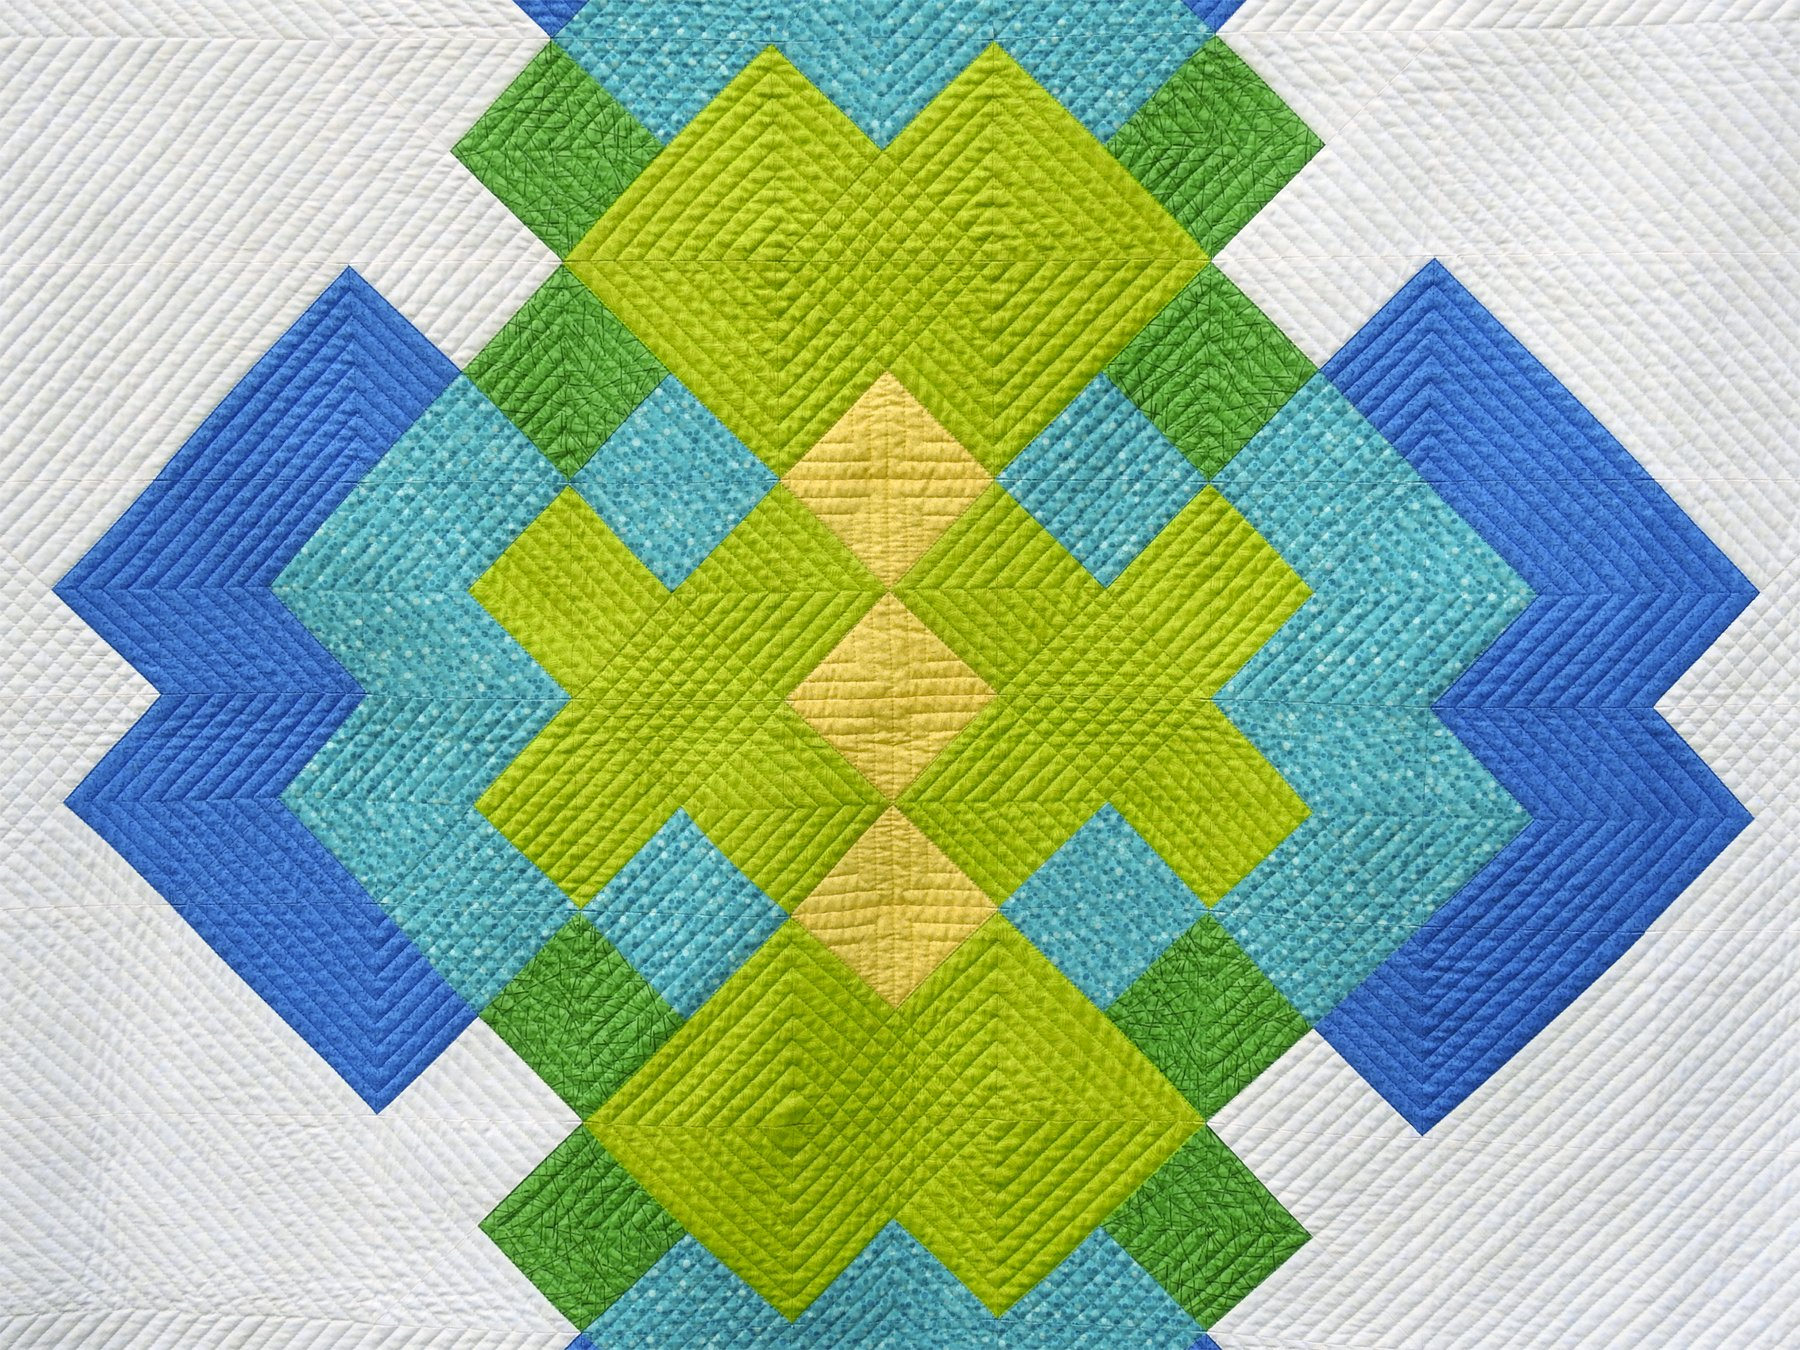 Planview - Fabric and Quilting Detail